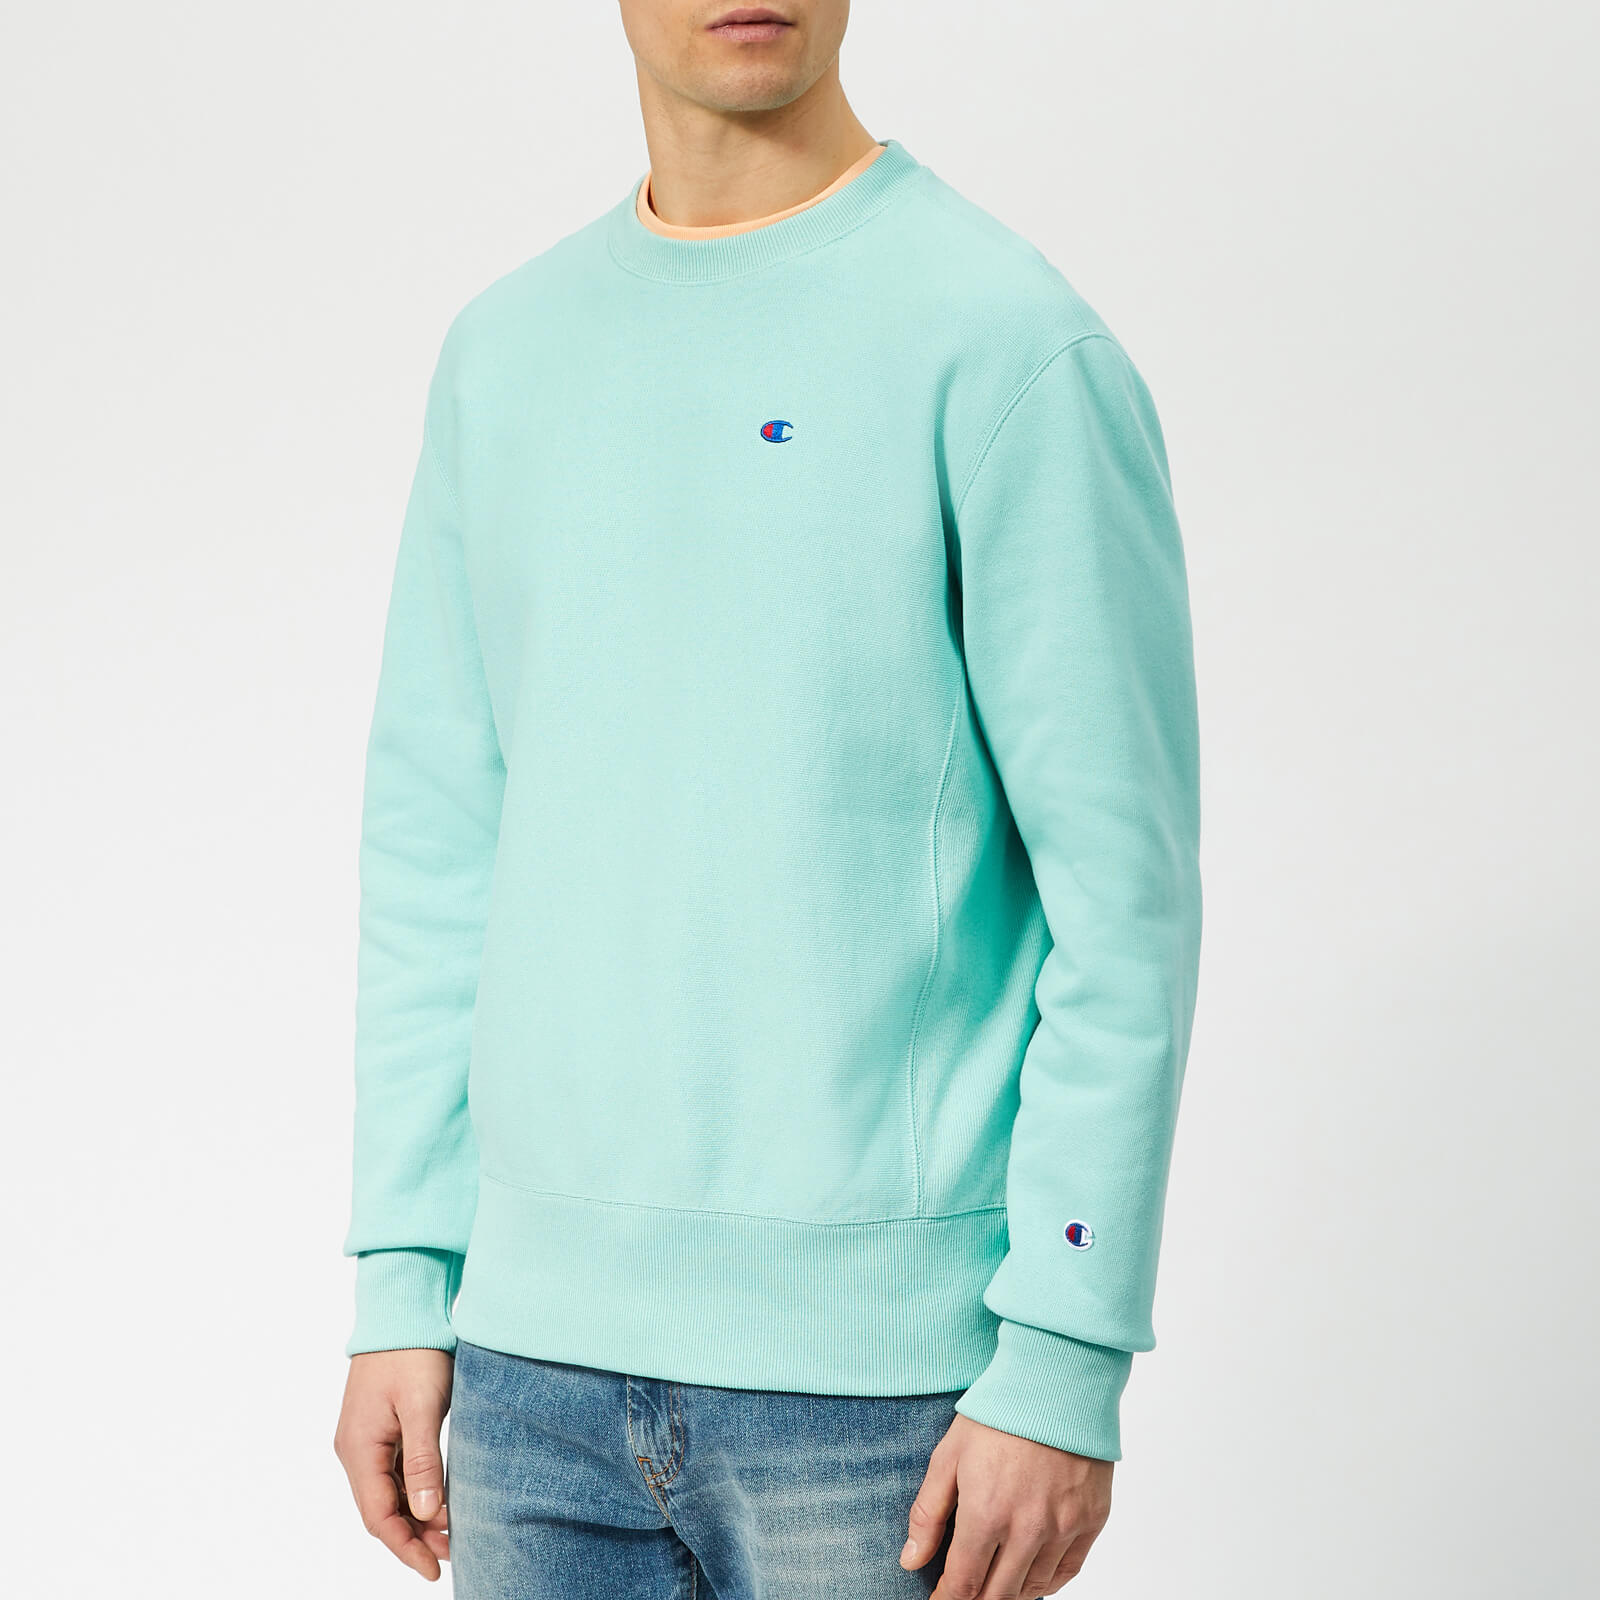 d03de5efd Champion Men's Crew Neck Sweatshirt - Teal - Free UK Delivery over £50